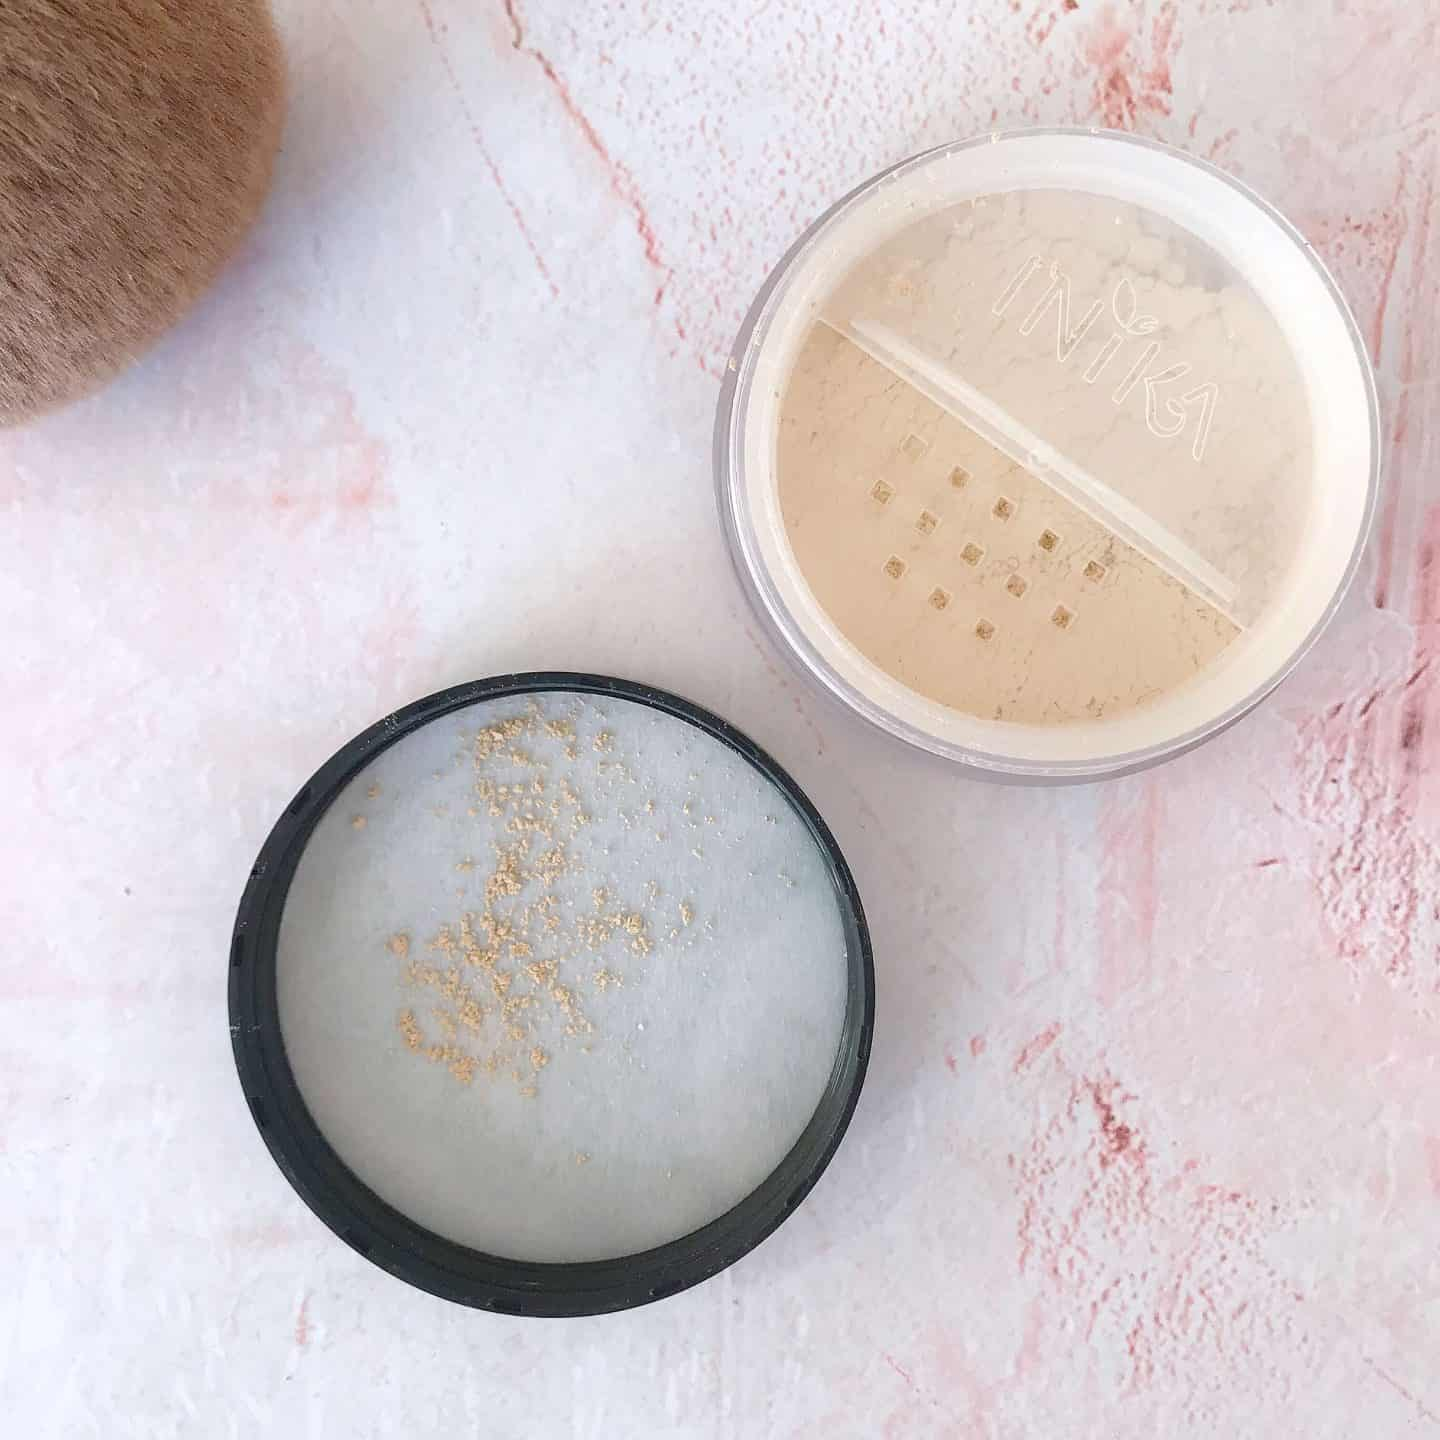 Inika Loose Mineral Foundation in Grace